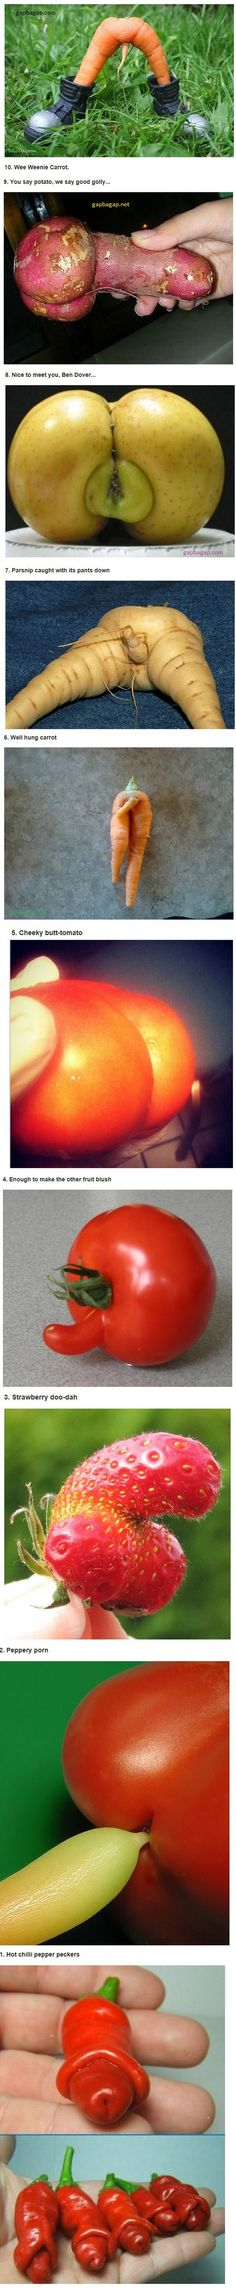 Top 10 Hilarious Pictures Of Fruits And Vegetables